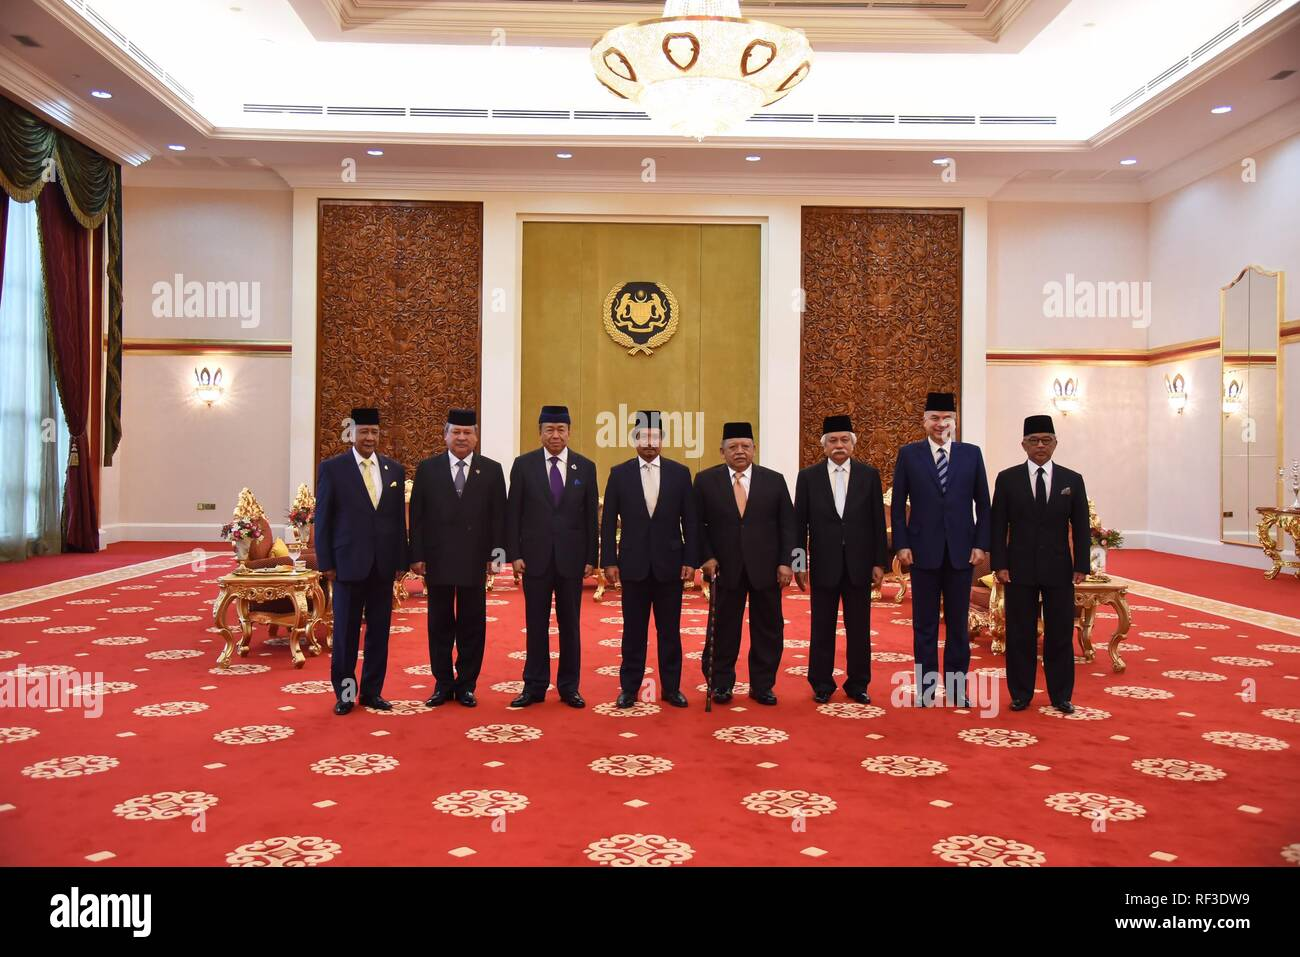 Kuala Lumpur, Malaysia. 24th Jan, 2019. Participants of Malaysia's Conference of Rulers pose for photos at Istana Negara (National Palace) in Kuala Lumpur, Malaysia, Jan. 24, 2019. Malaysia's Conference of Rulers on Thursday named Sultan Abdullah Sultan Ahmad Shah as the country's 16th king, who serves as the constitutional head of state, state news agency Bernama reported. Credit: Jabatan Penerangan Malaysia/Xinhua/Alamy Live News - Stock Image